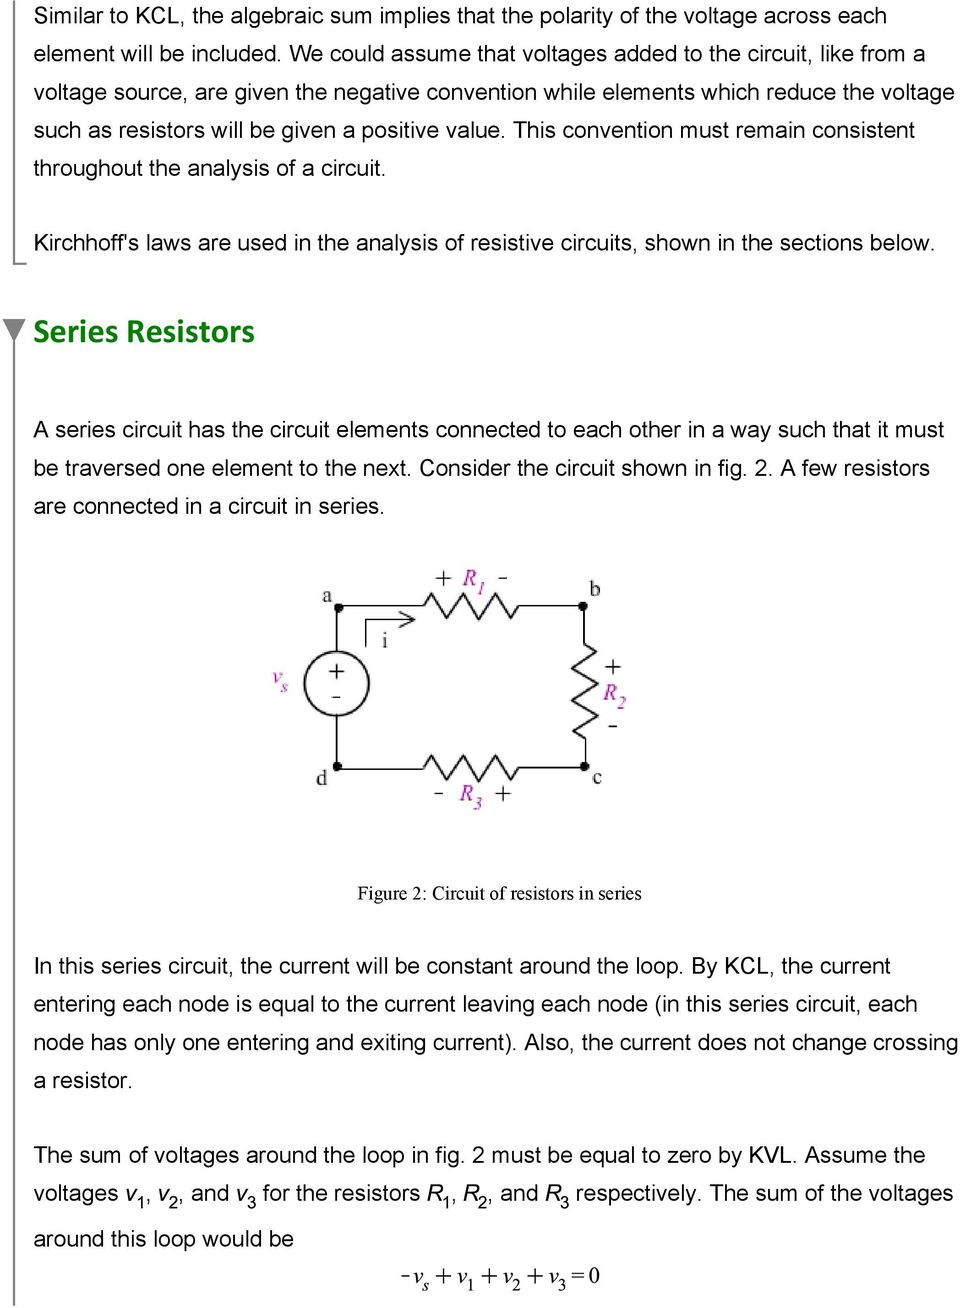 Series And Parallel Resistive Circuits Pdf For In The Text They Show A Circuit That Looks Like This Convention Must Remain Consistent Throughout Analysis Of Kirchhoffs Laws